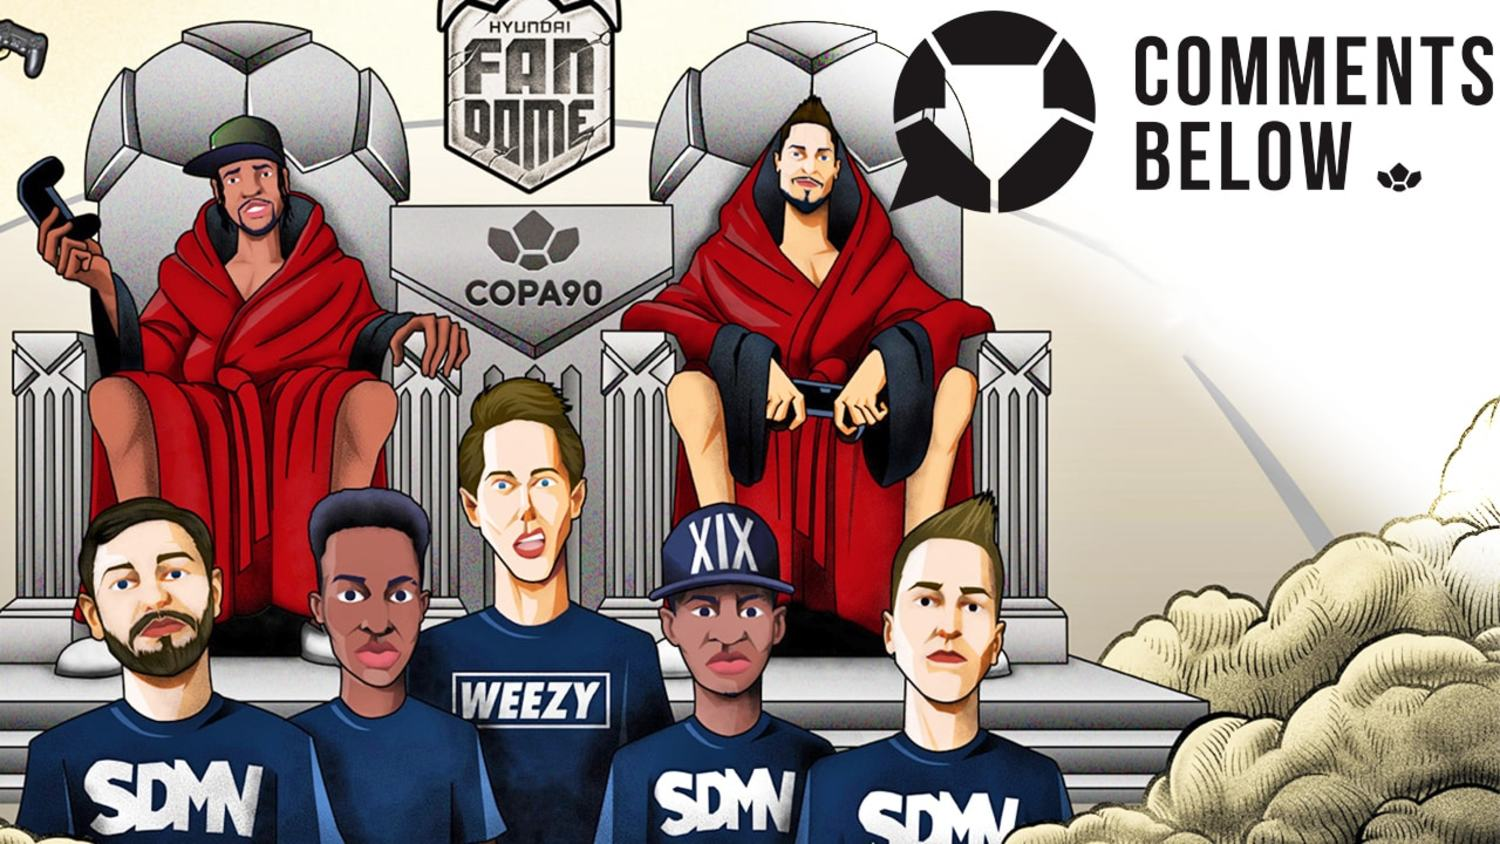 Copa90 x Hyundai #PlayTheDome with the Sidemen!